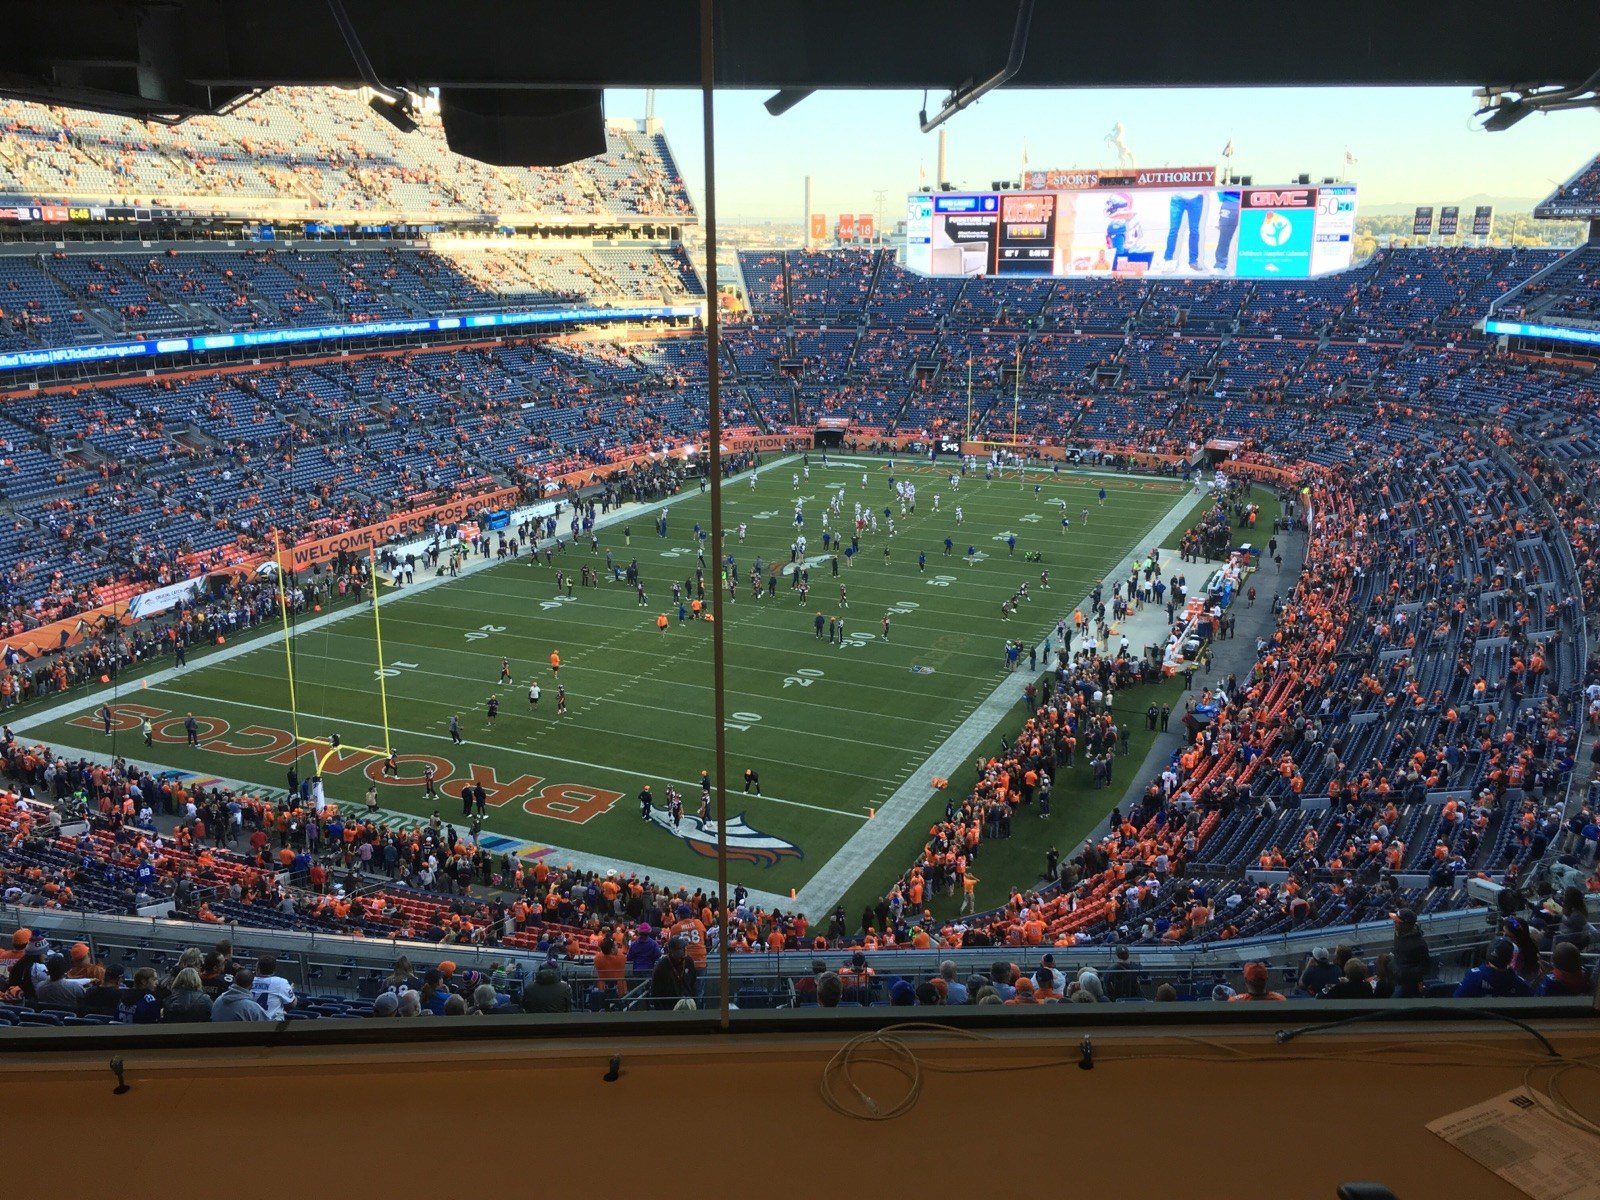 Pre-game warm ups for the Giants and Broncos before their Sunday night game on Oct. 15, 2017.